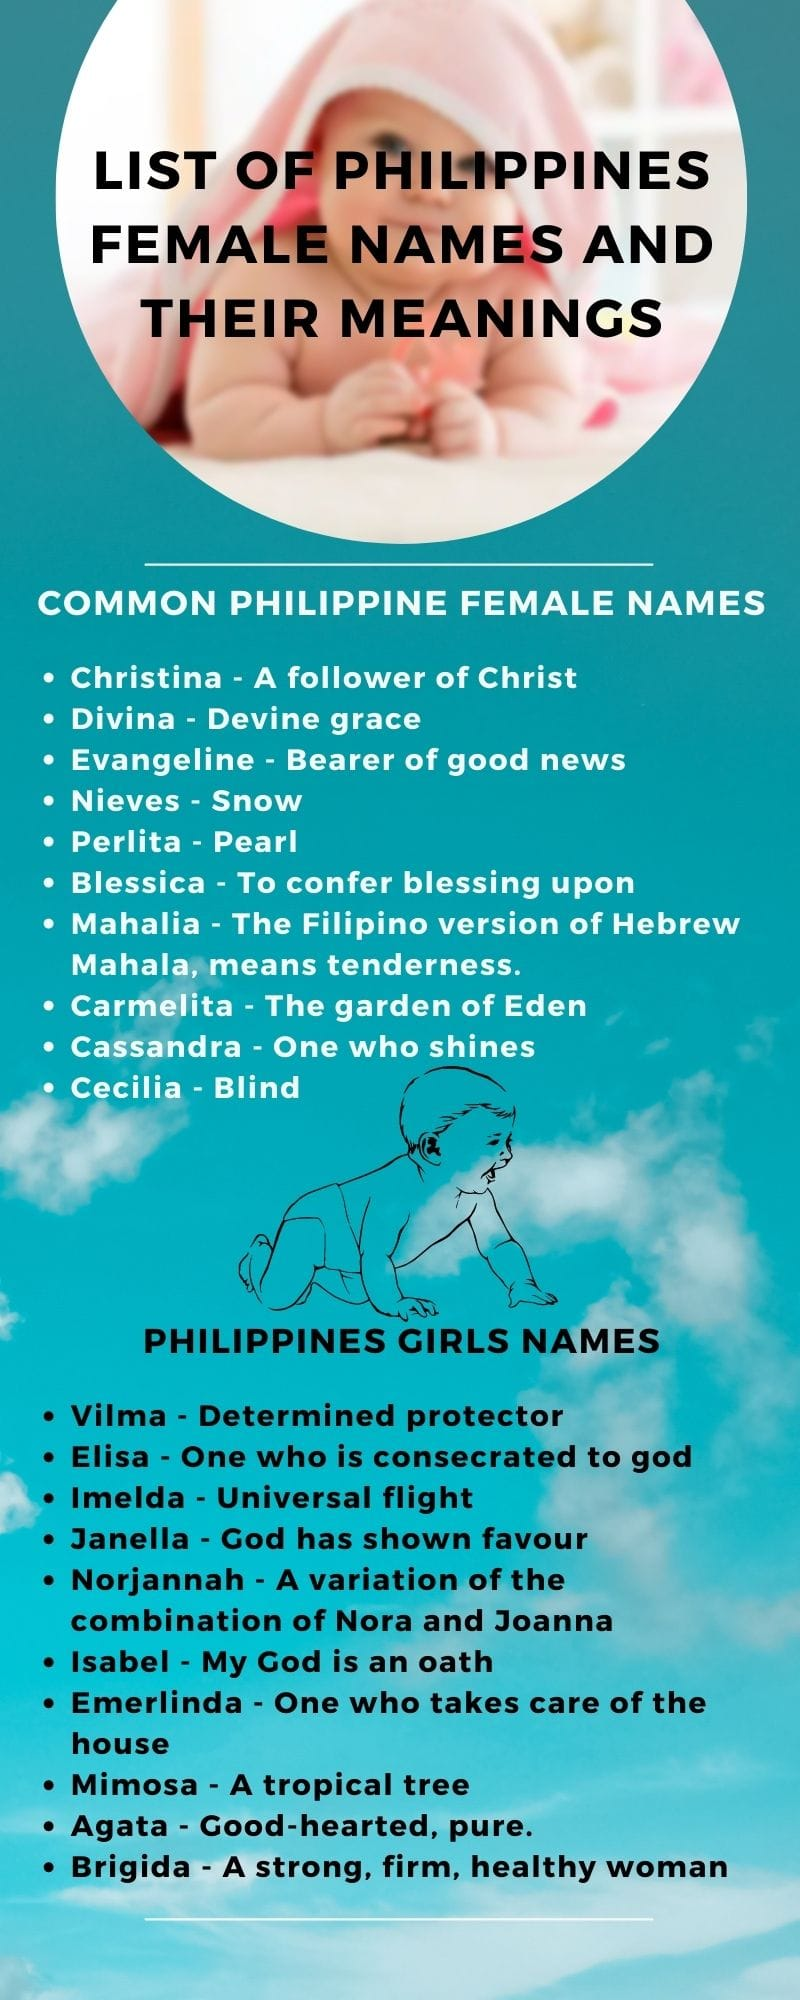 List of Philippines female names